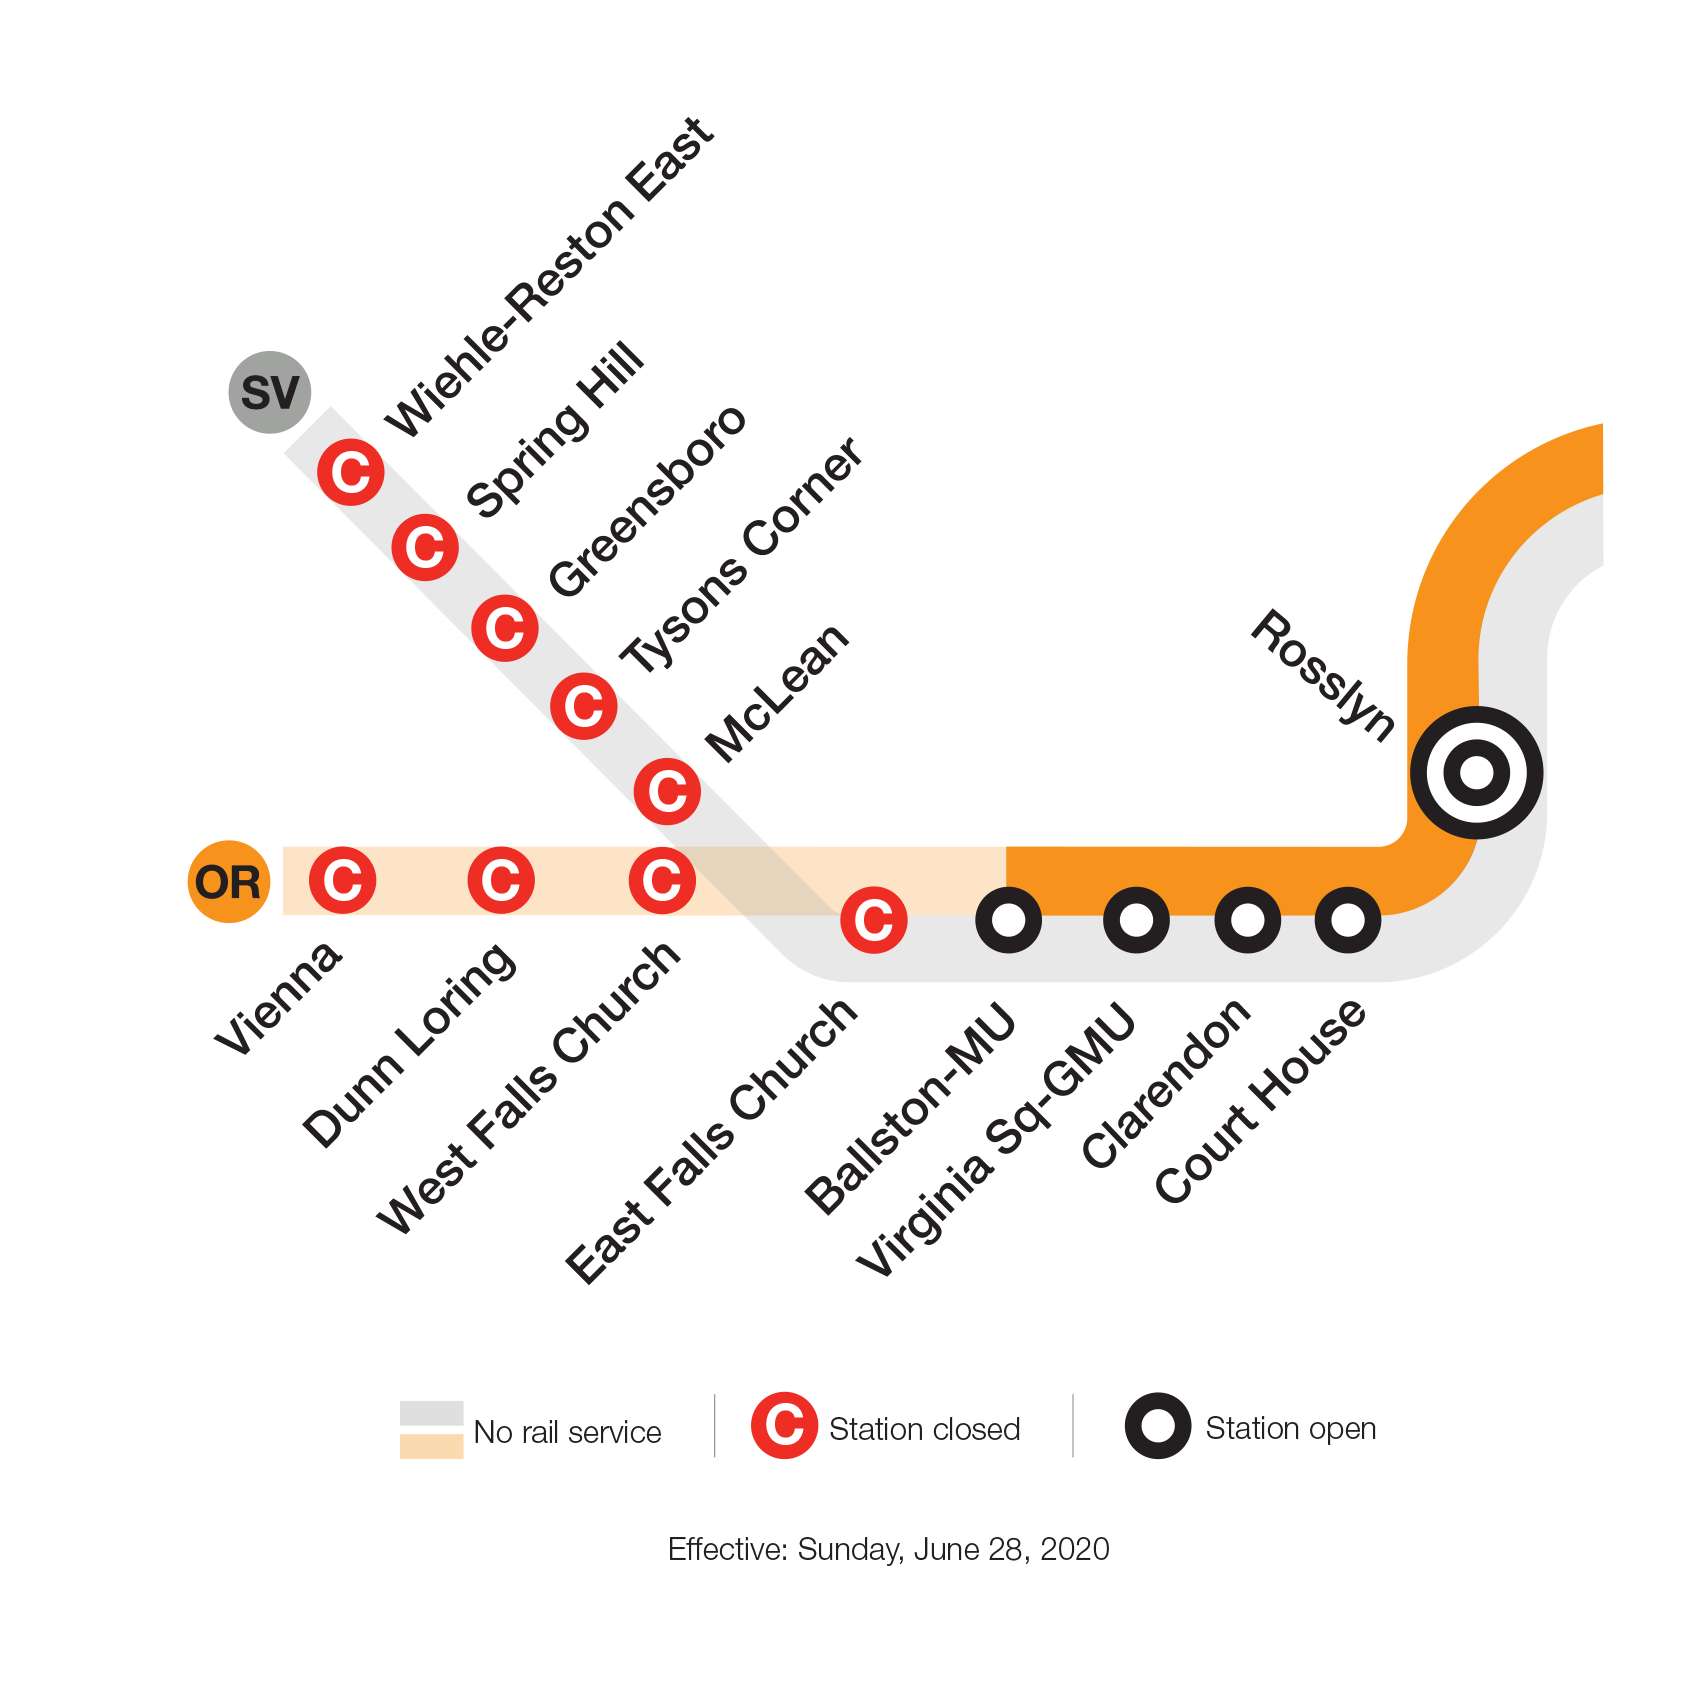 Beginning Saturday, May 23, all nine Orange and Silver line stations west of Ballston-MU will be closed and no Silver Line trains will operate in the Metrorail system.